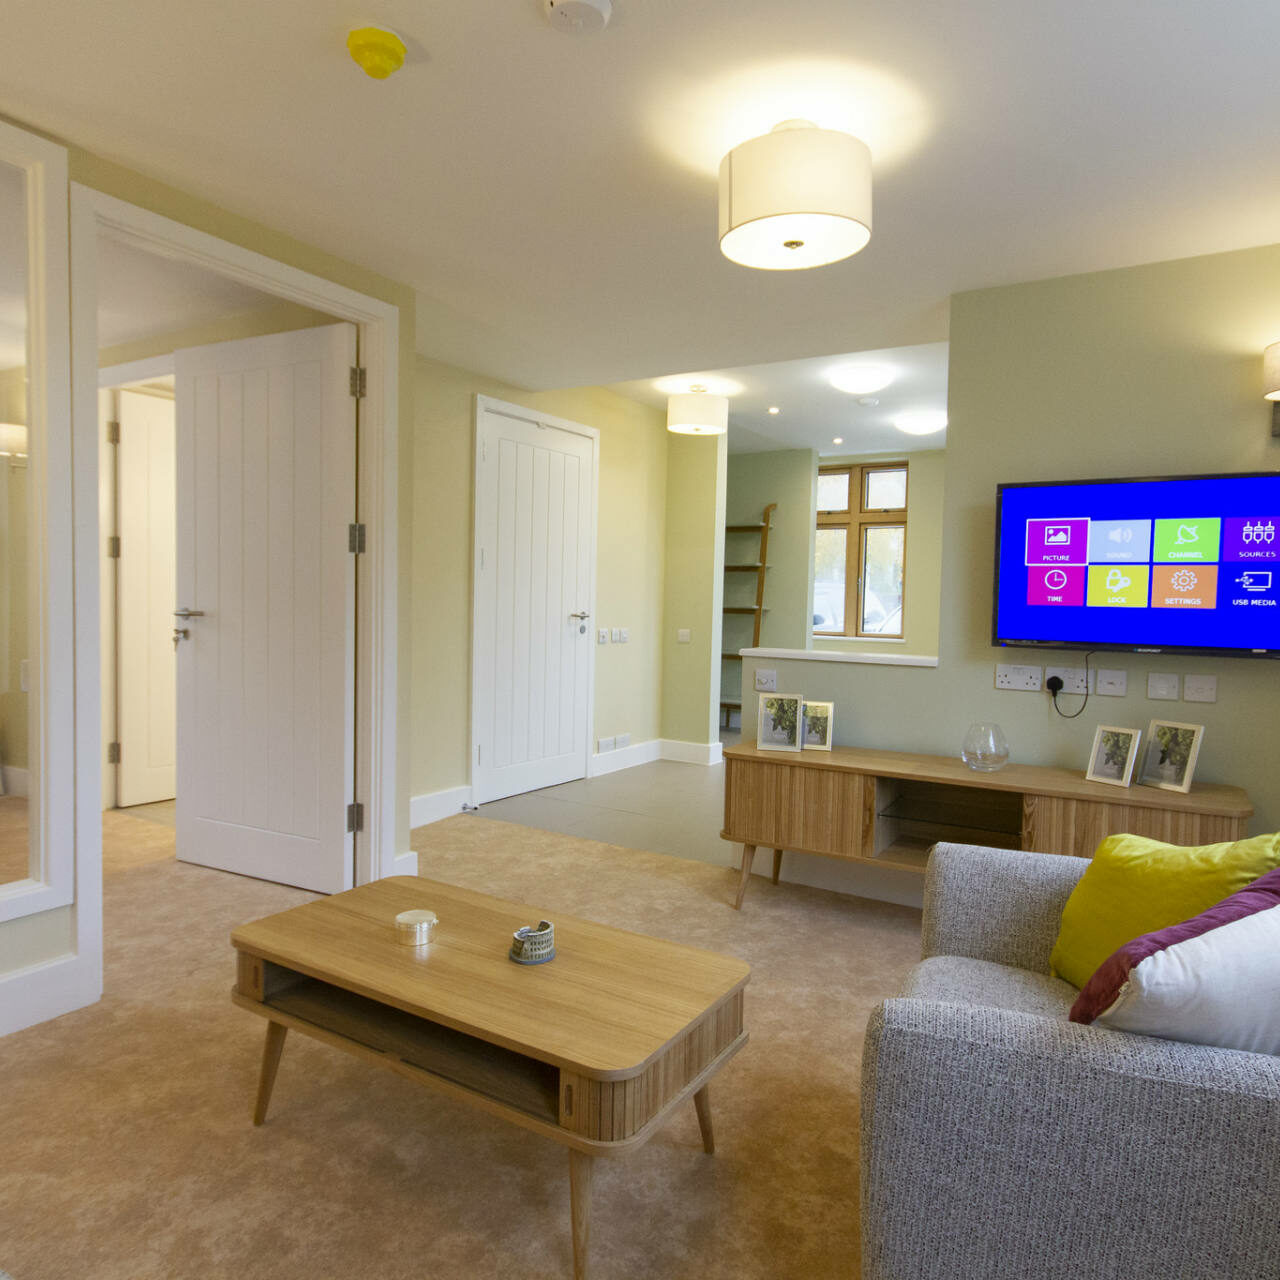 Dementia-friendly care home project offers solutions for independent living